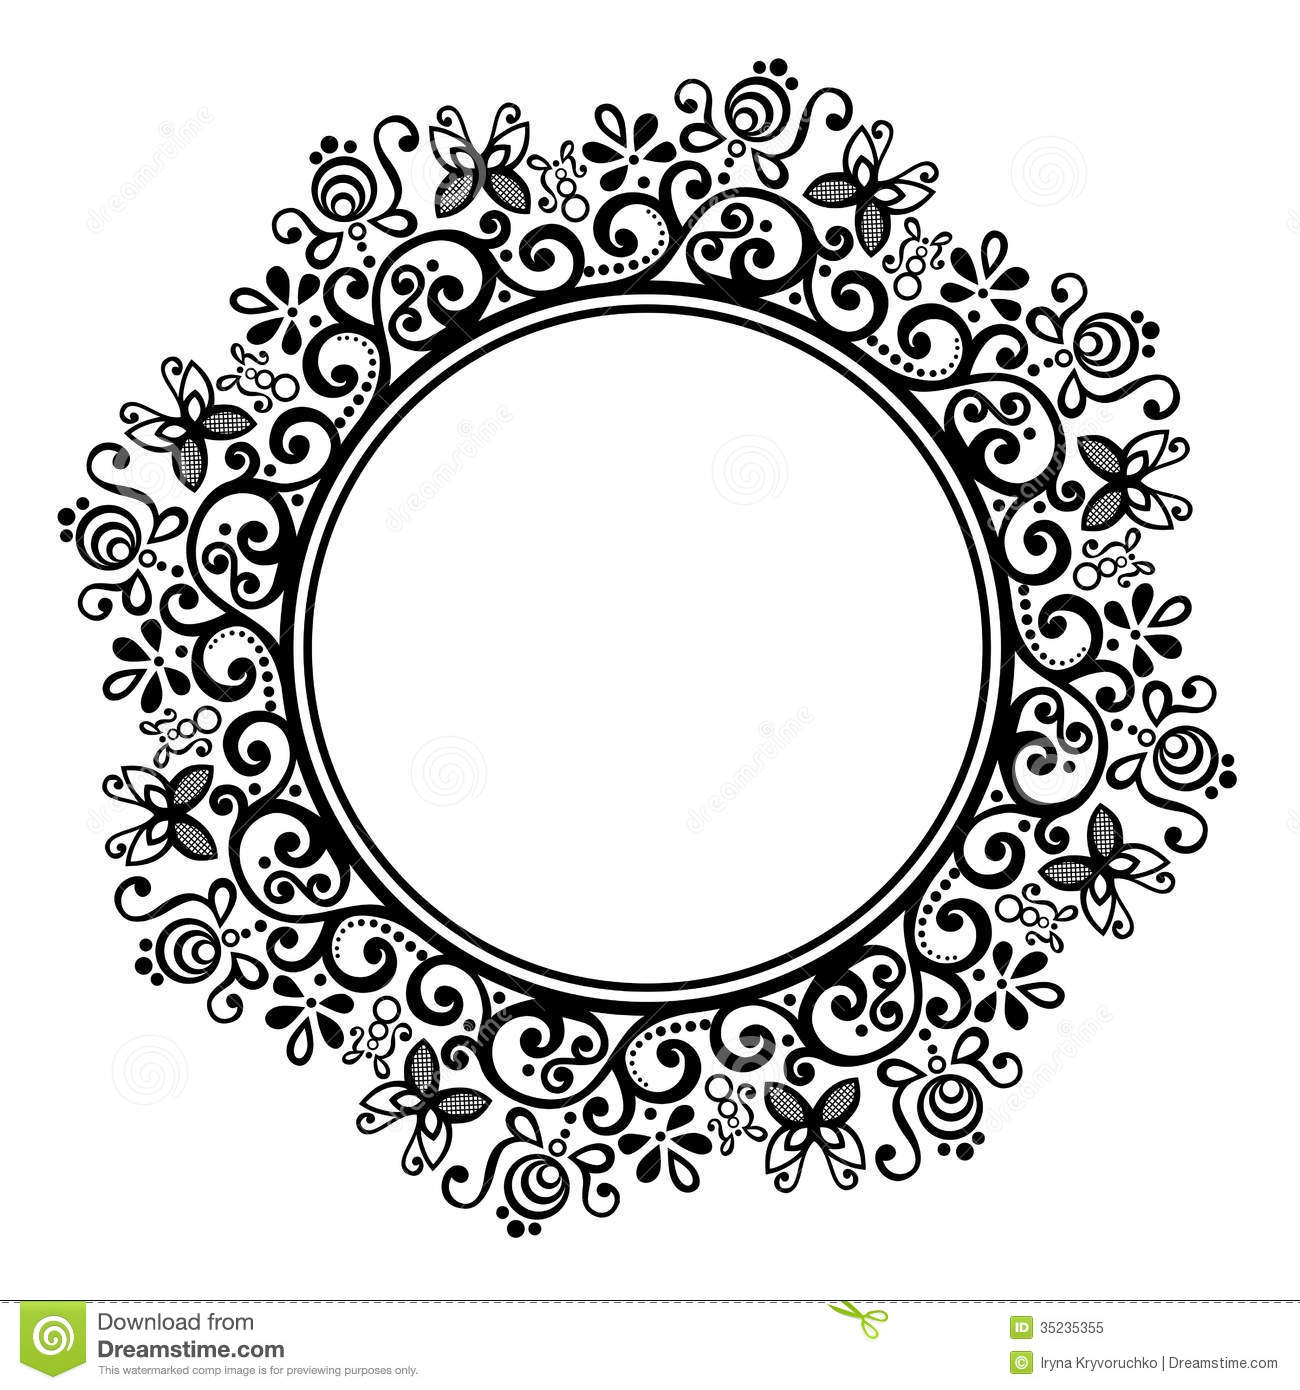 Round vector clipart clipart free download Round Vector Clipart clipart free download